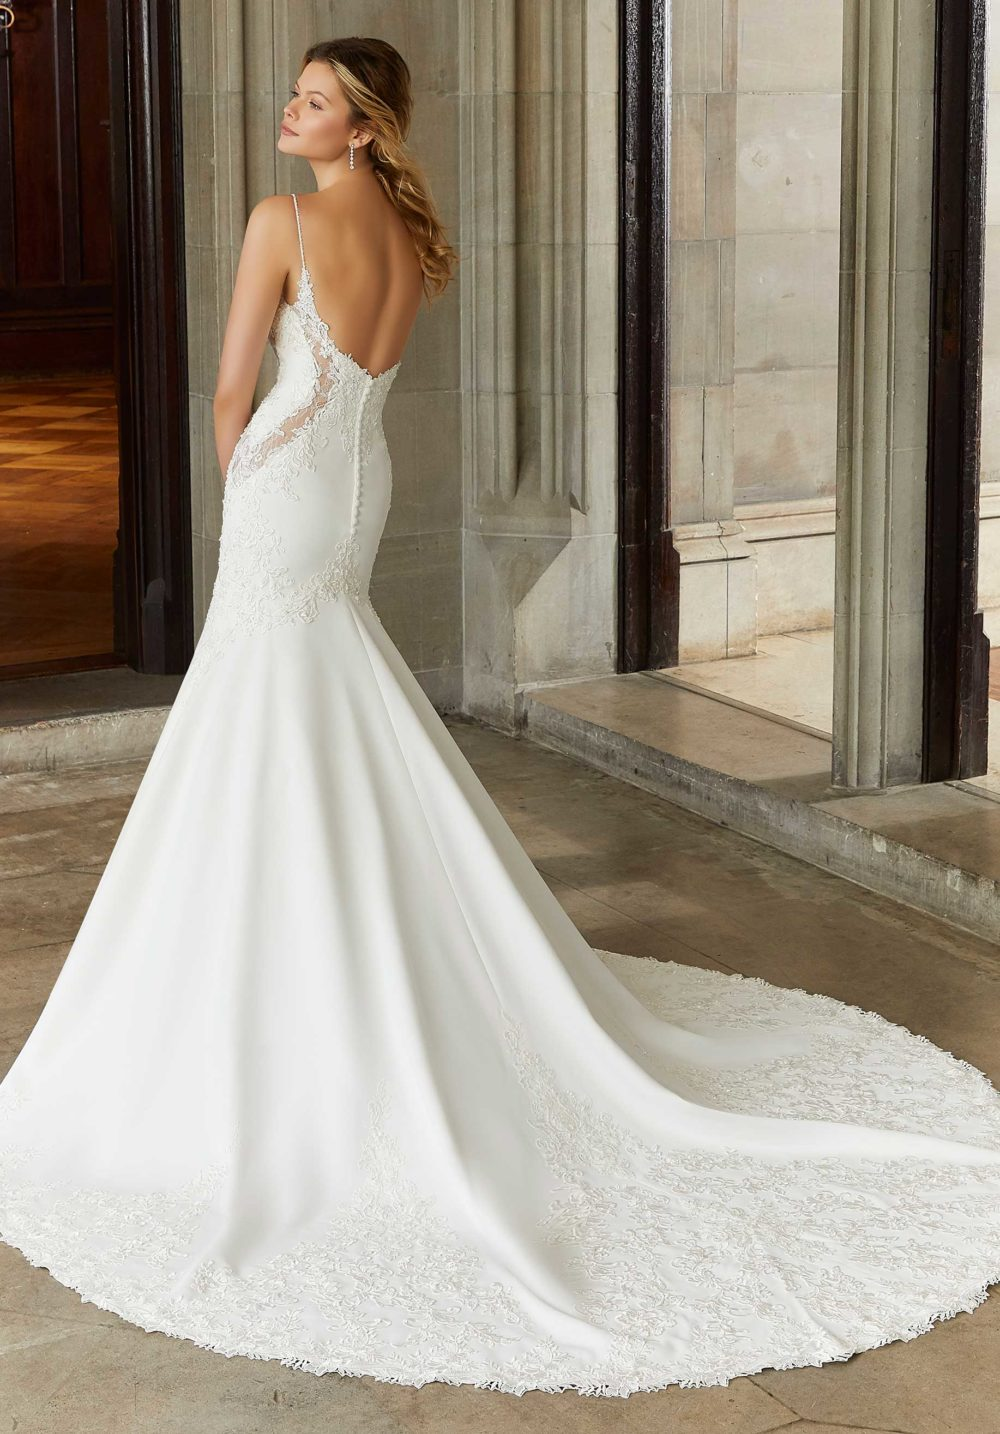 Morilee Wedding Gown Dress style 2136 back